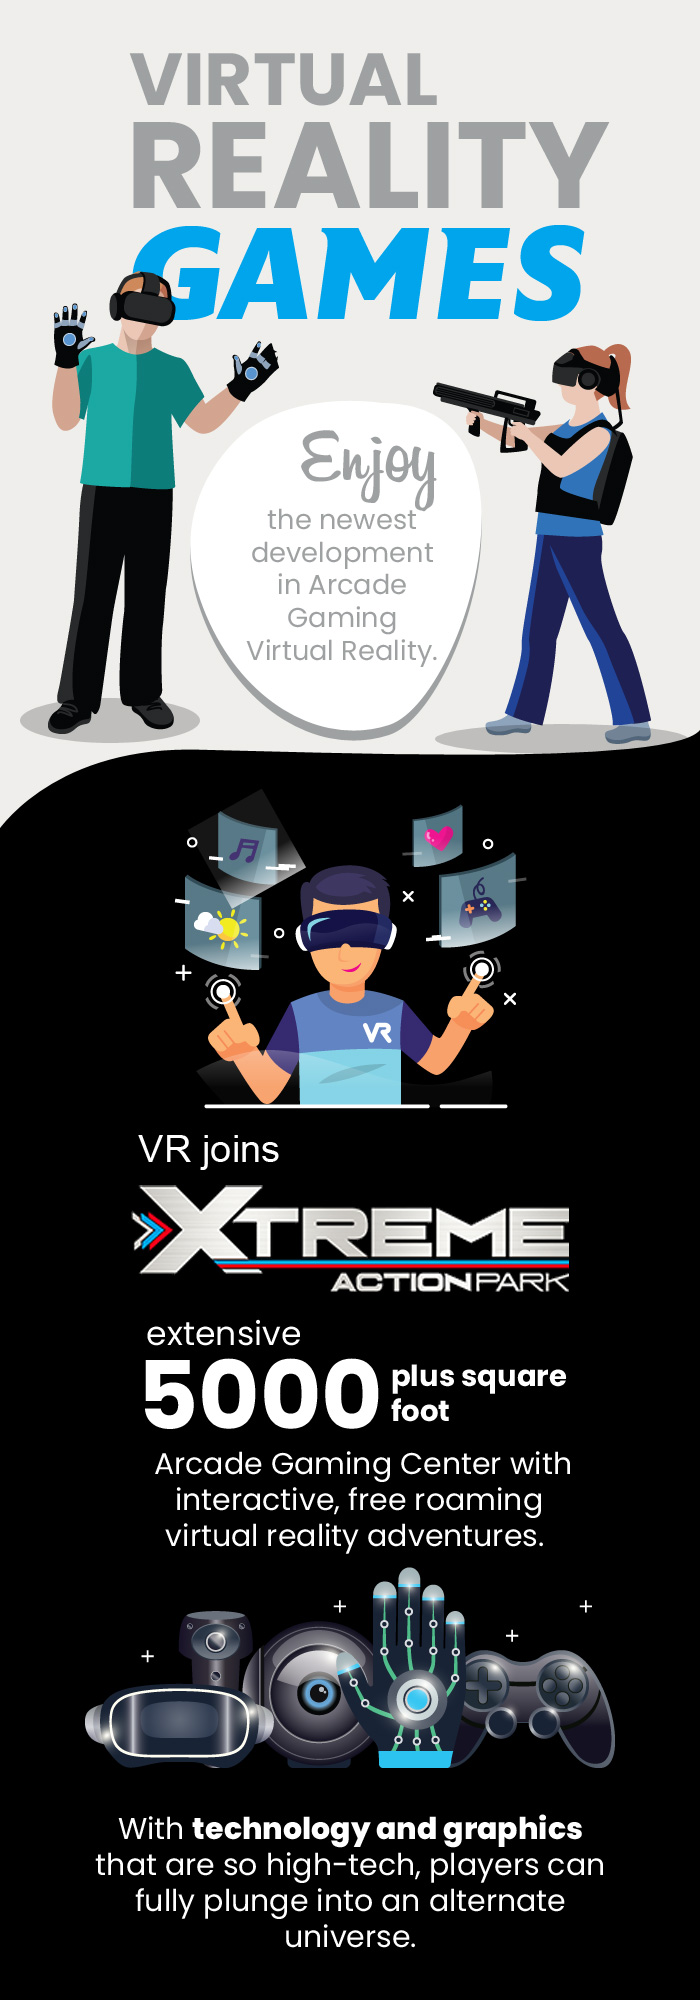 Virtual Reality Gaming at Xtreme Action Park